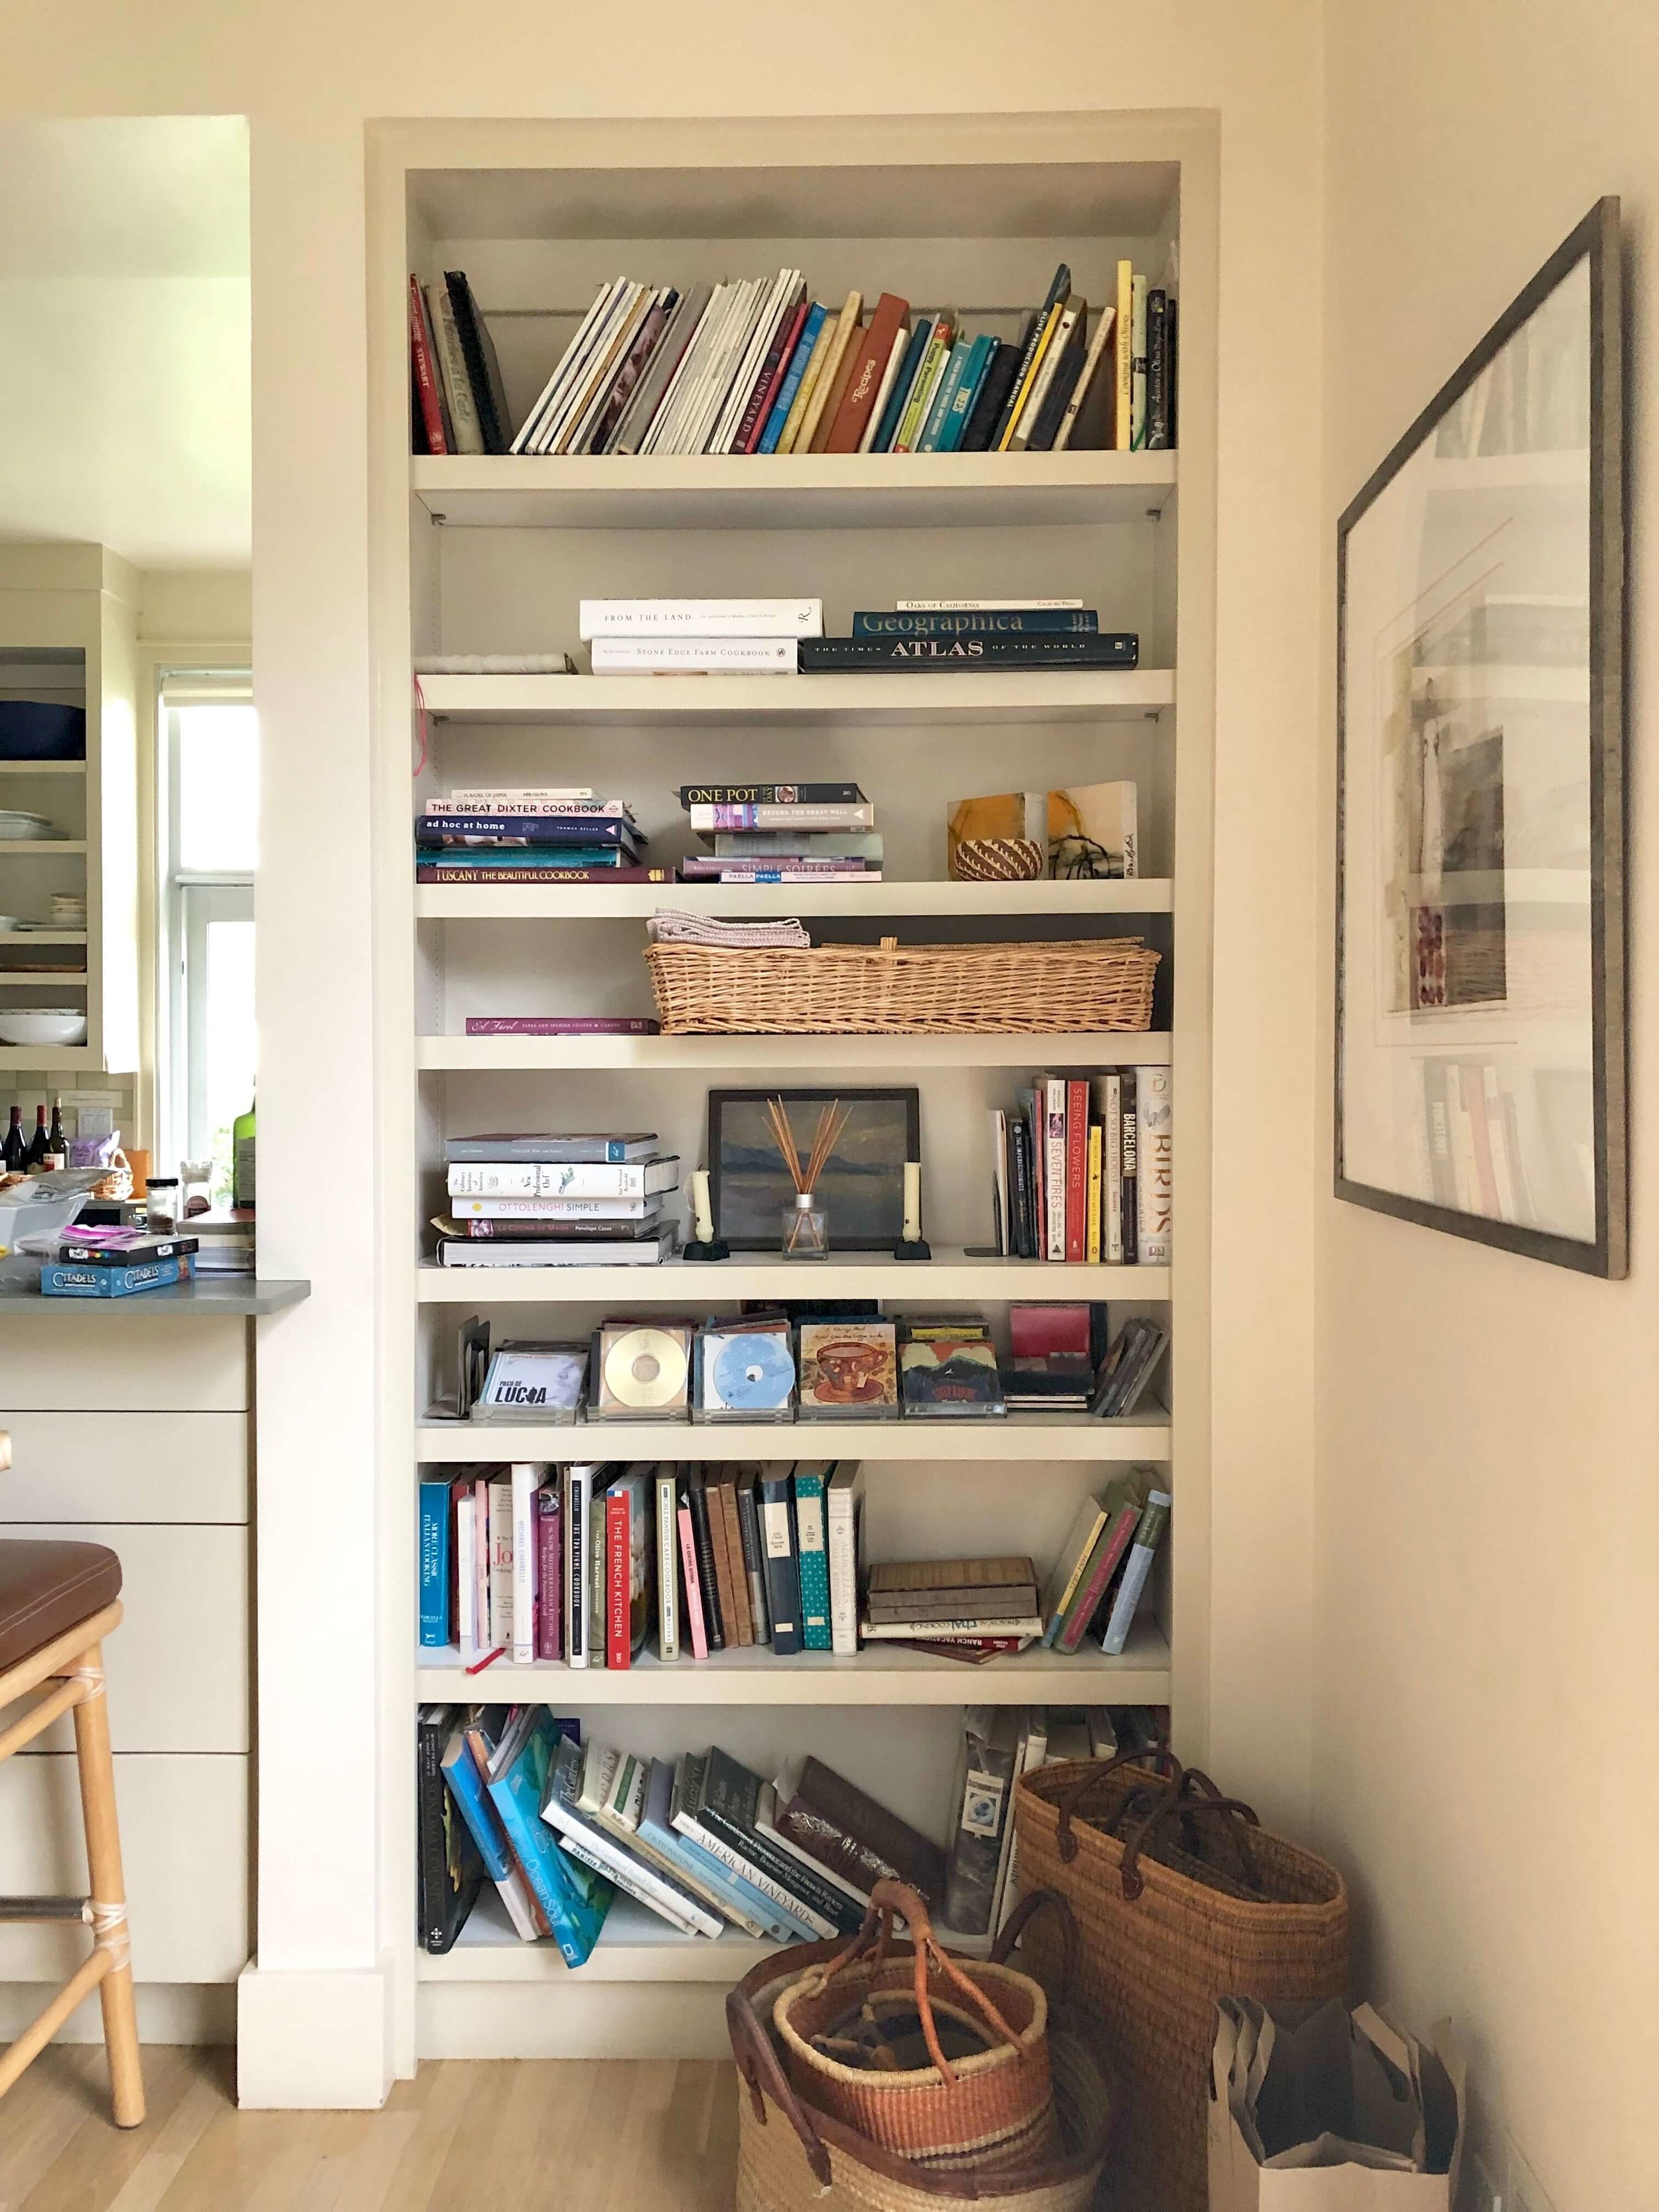 Cookbooks, travel books, baskets for marketing and day trips are all helpful and make for a lived-in vibe in this Sonoma Valley Airbnb. #airbnb #winecountry